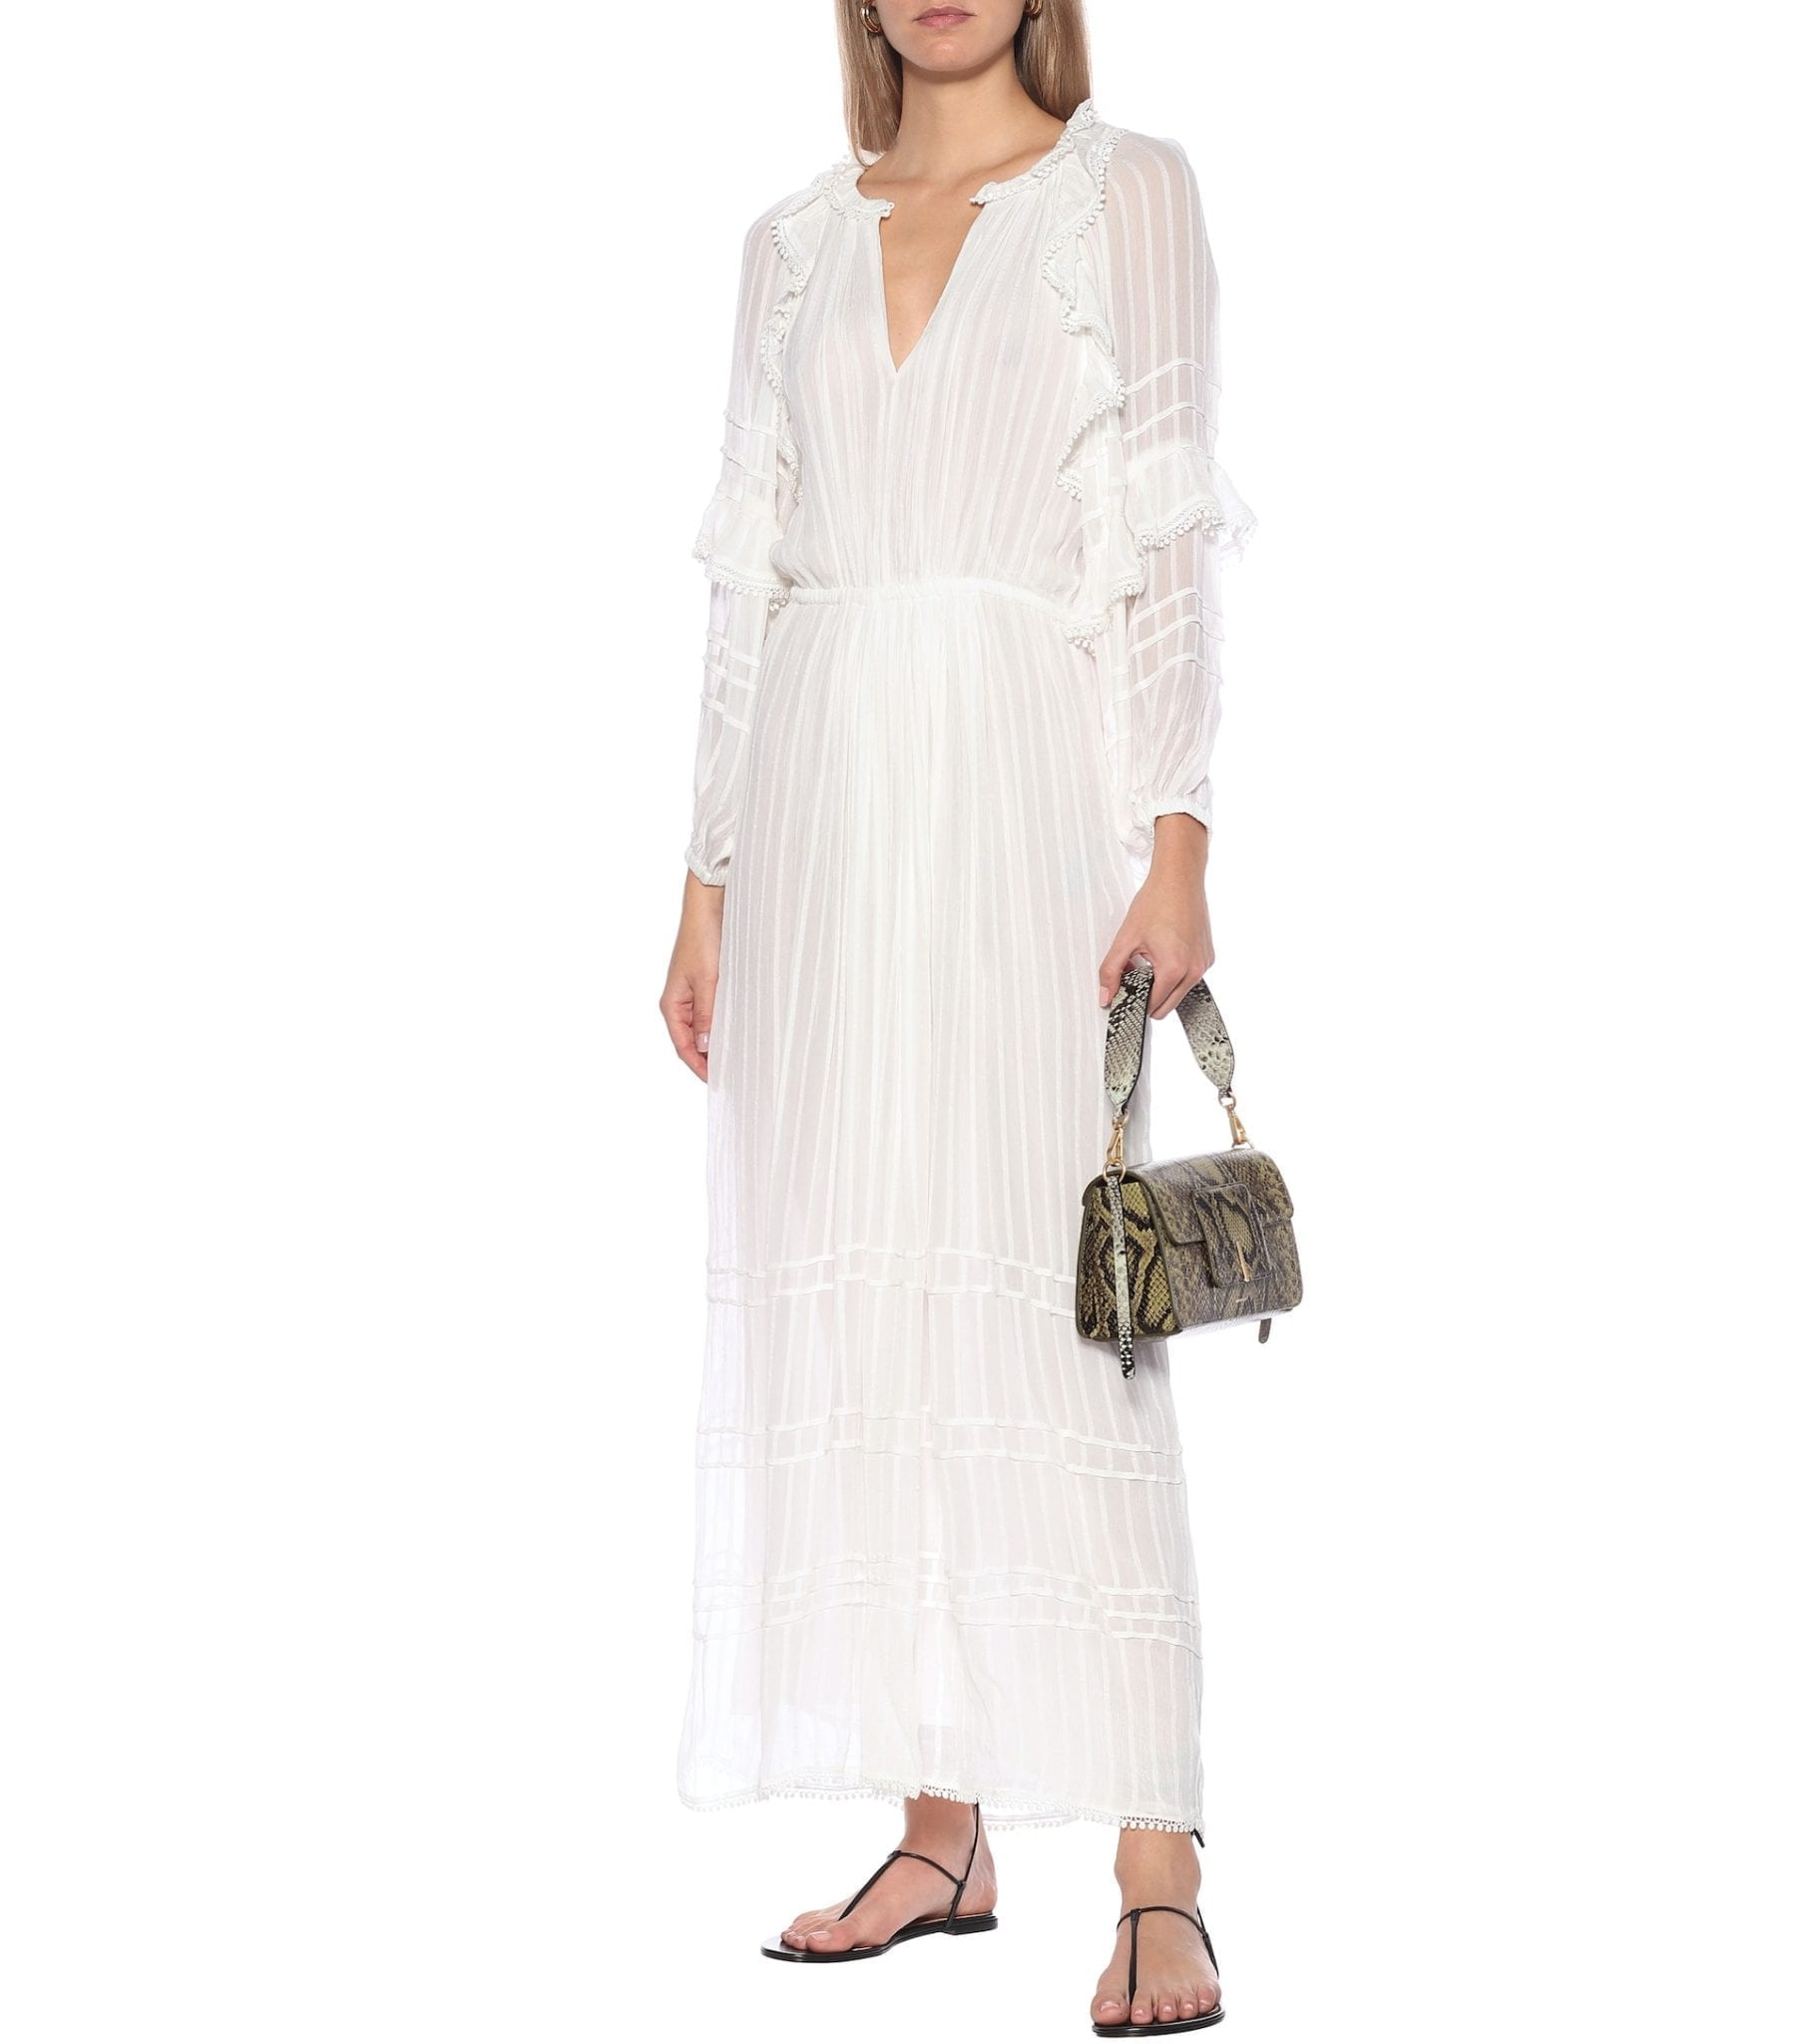 ISABEL MARANT, ÉTOILE Justine Ruffled Maxi Dress